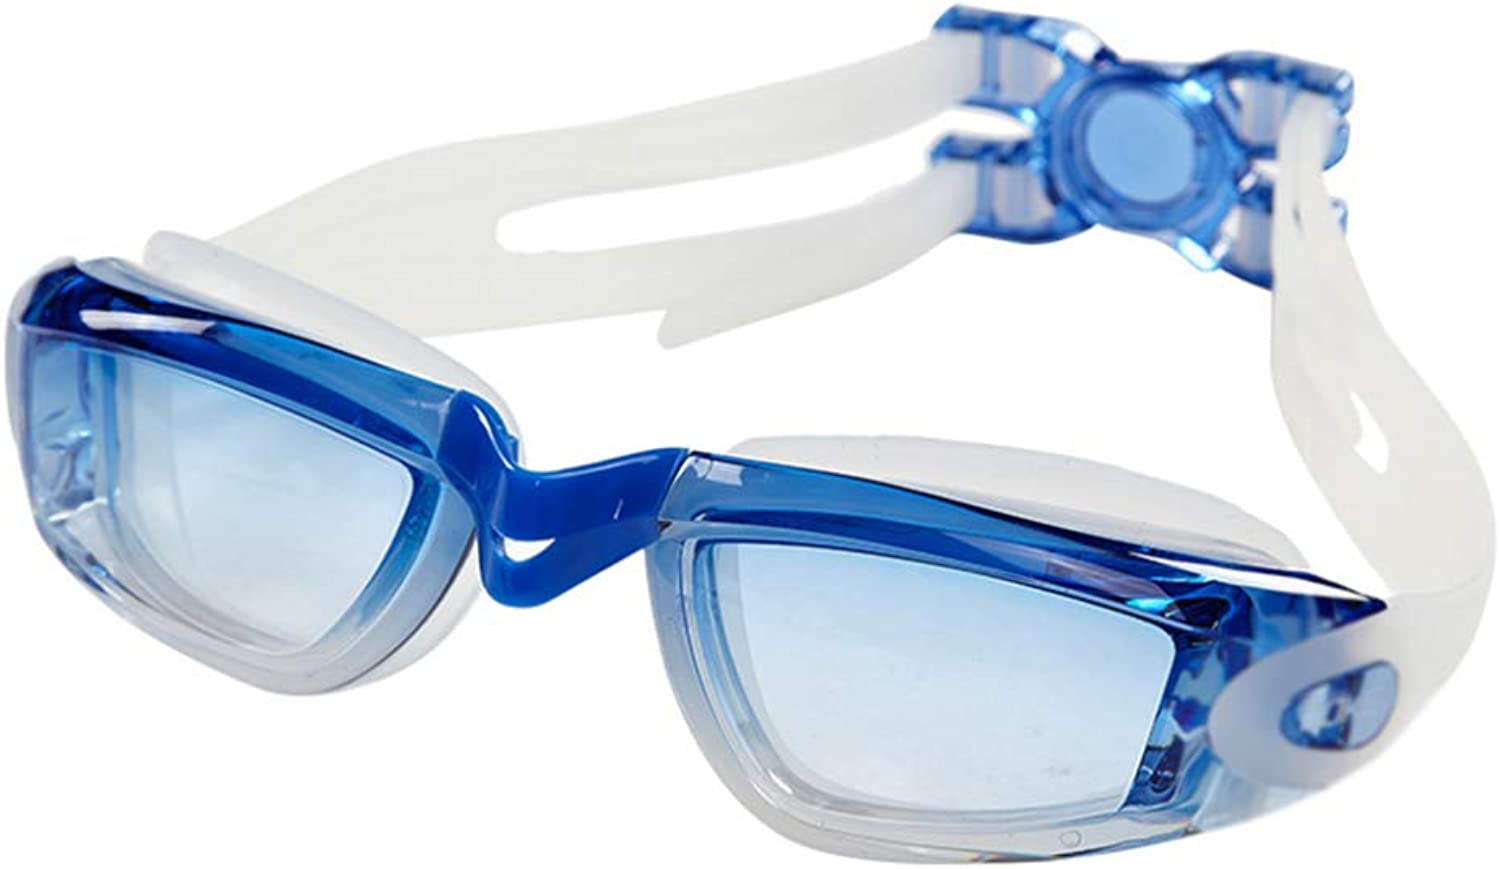 YP@YYJ Swimming Goggles Waterproof Leakproof Racing Swimming Glasses Hd Anti-Fog Lens Clear Field of Vision D